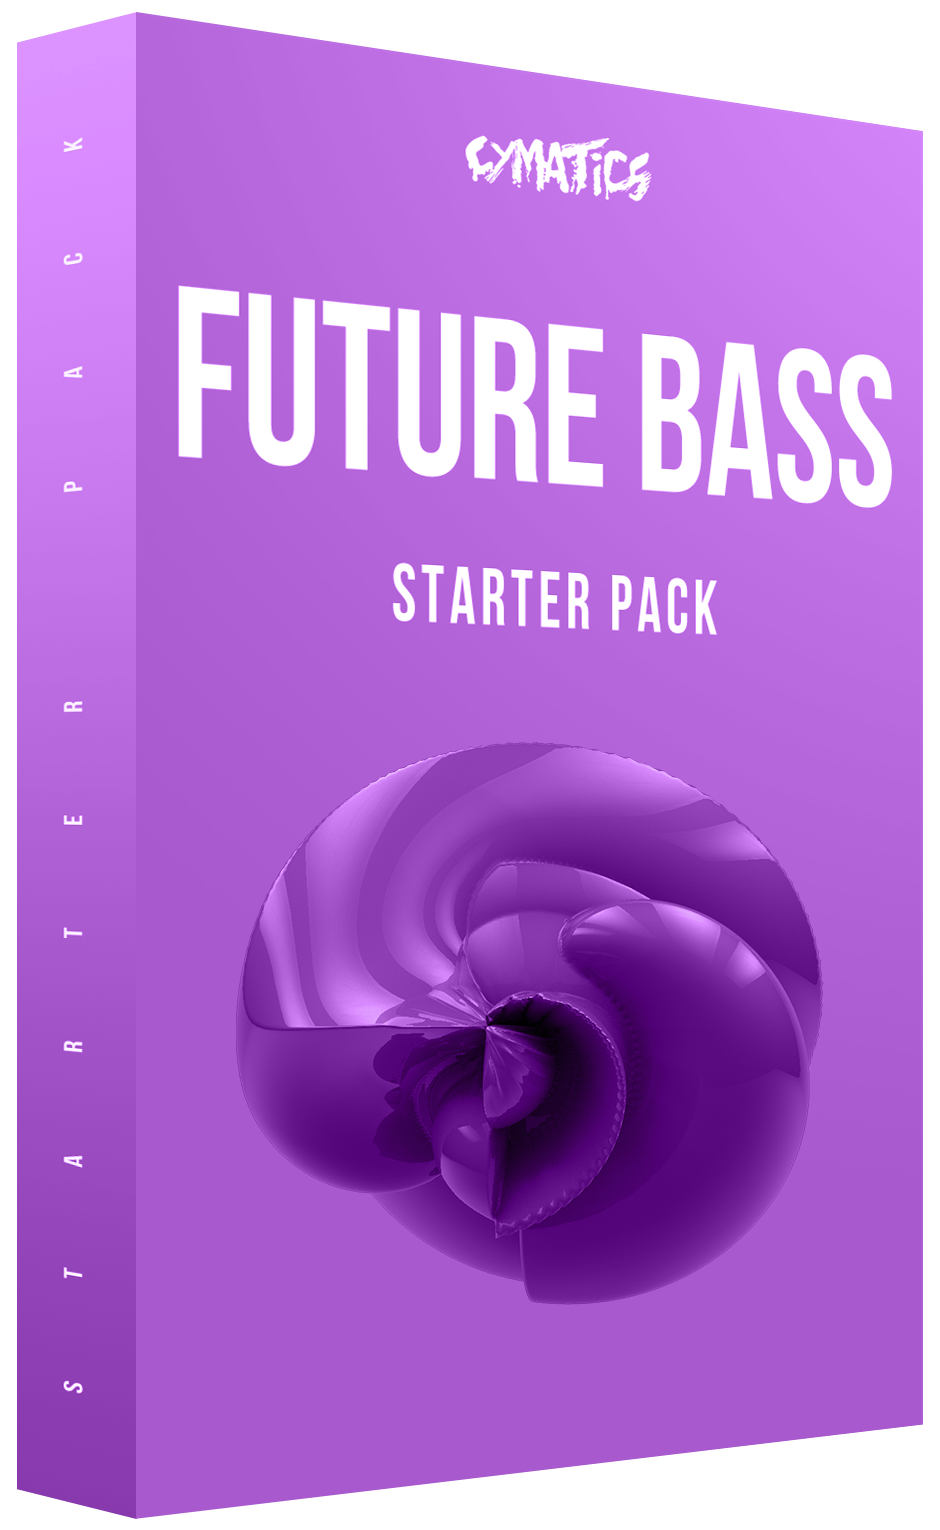 Free Future Bass Download, Future Bass Starter Pack by Cymatics, Cover Art